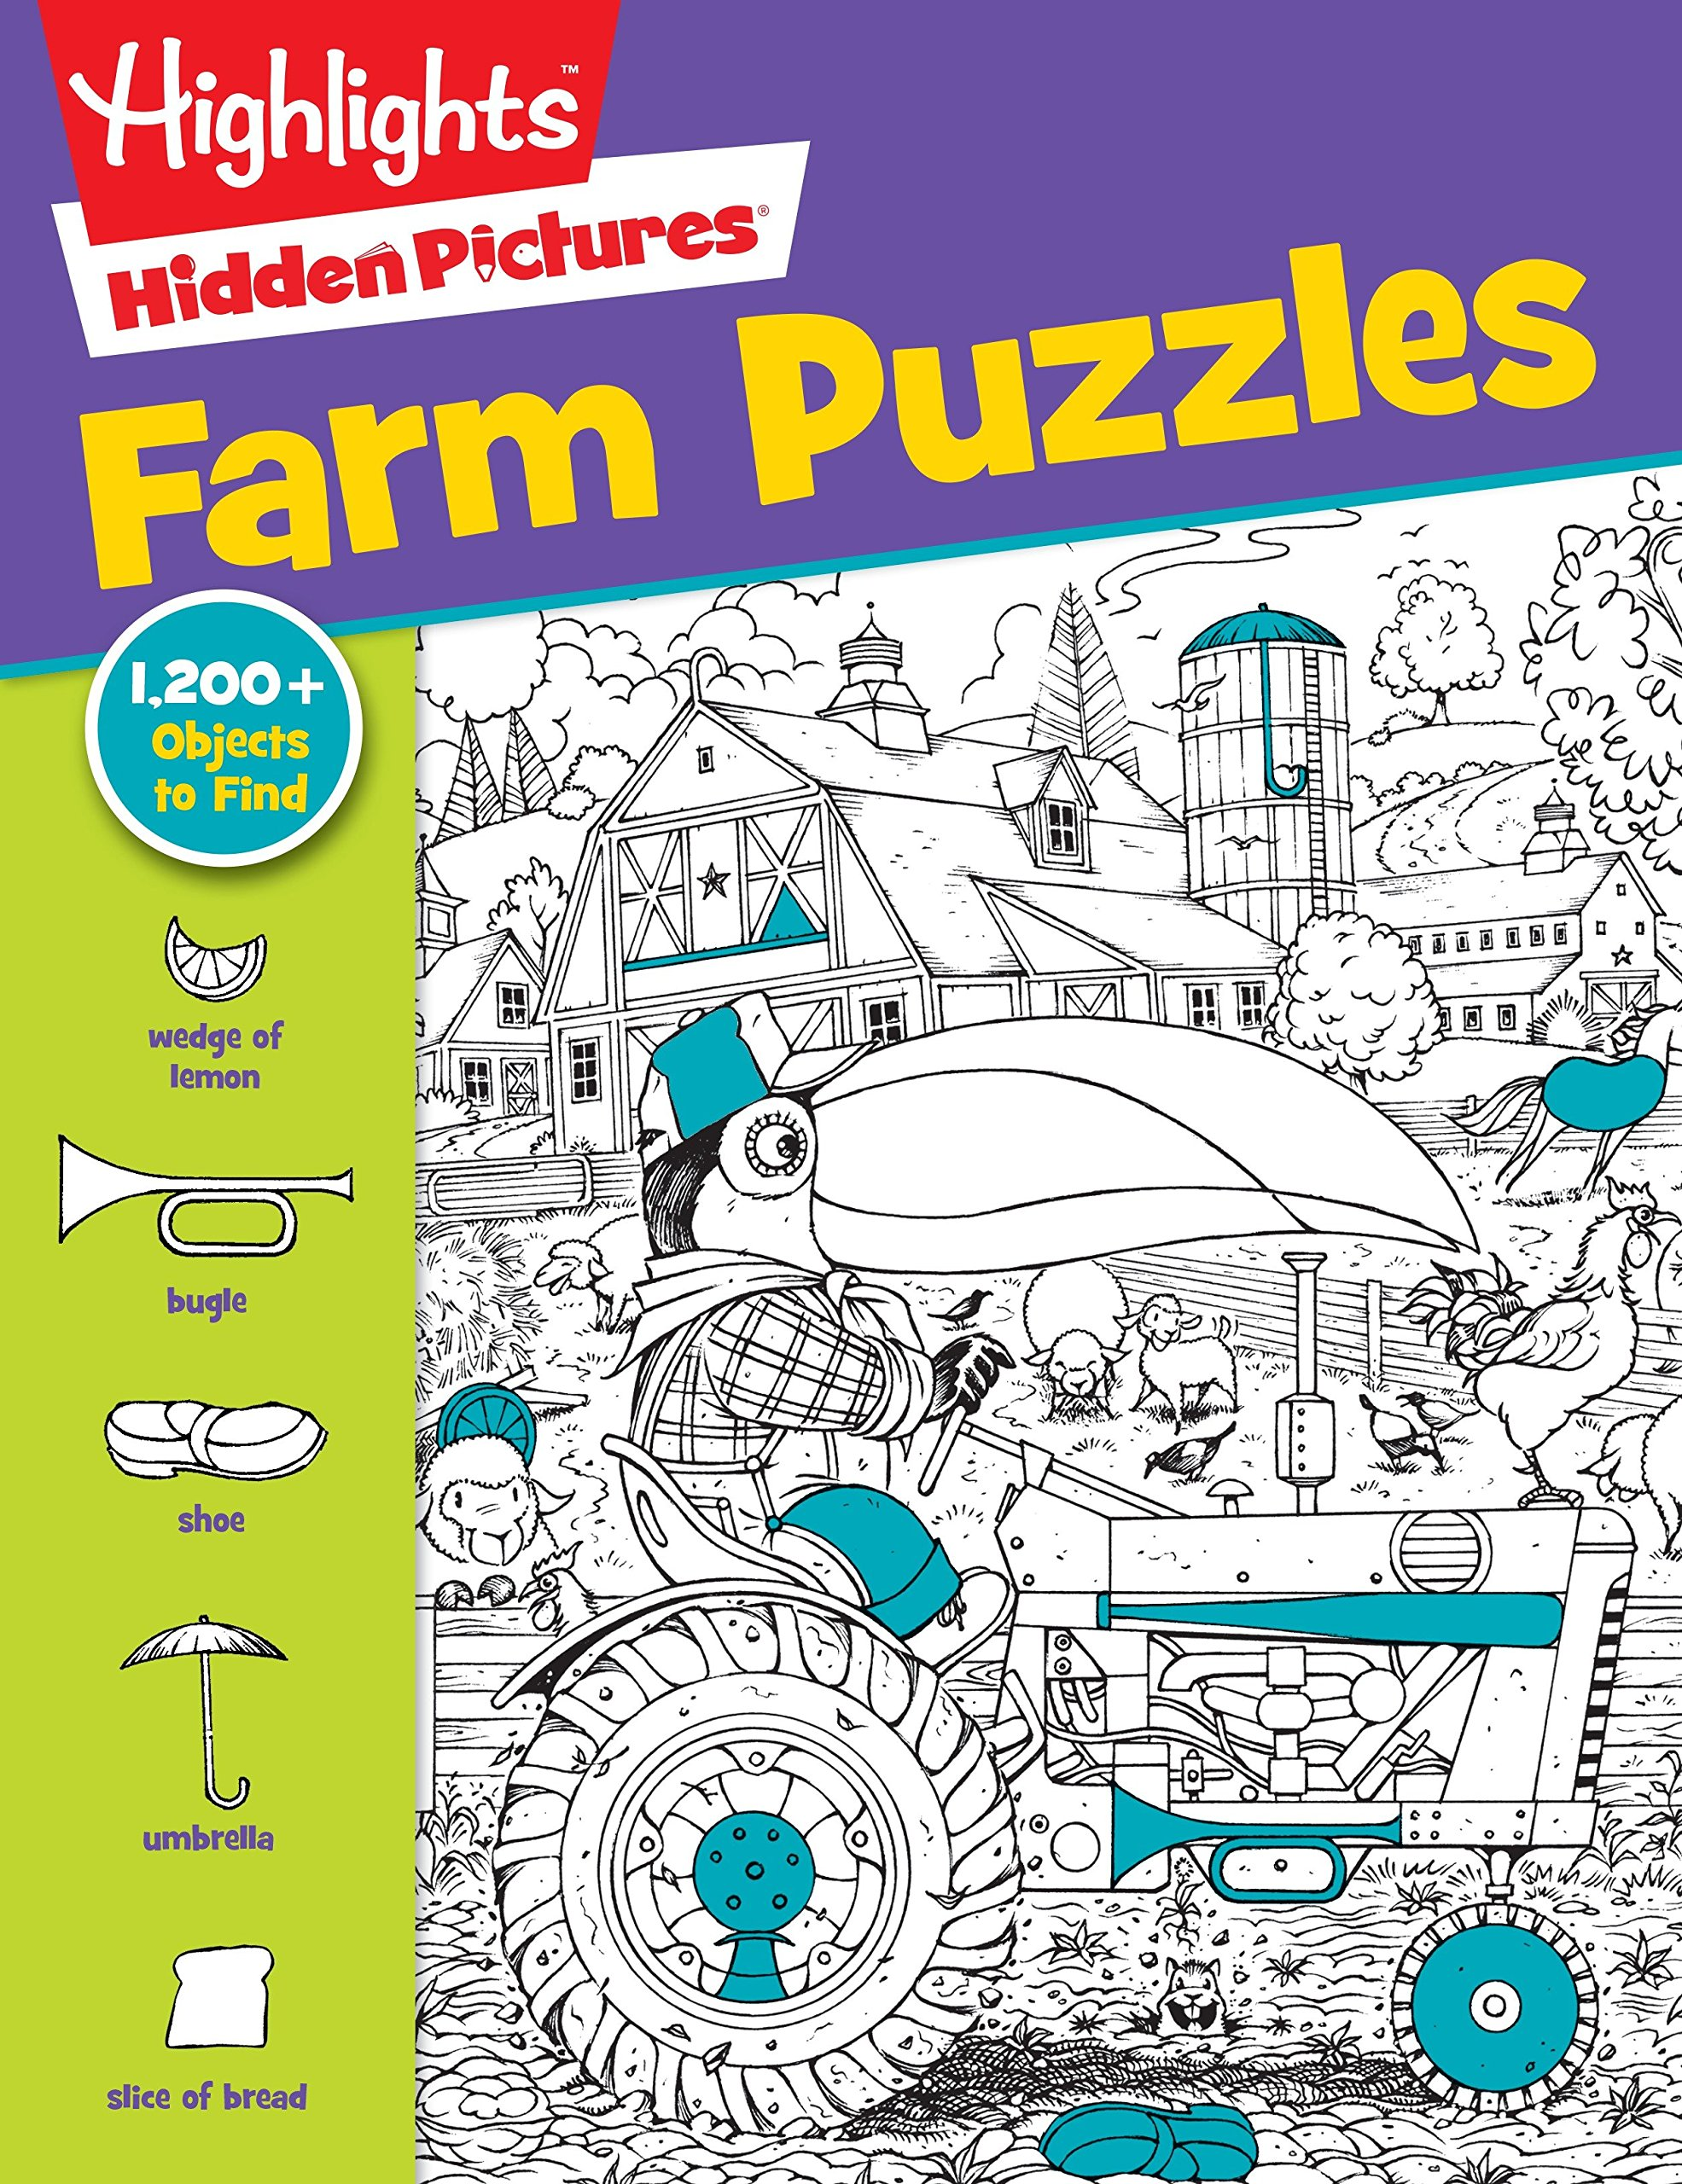 Farm Puzzles HighlightsTM Hidden Pictures%C2%AE product image